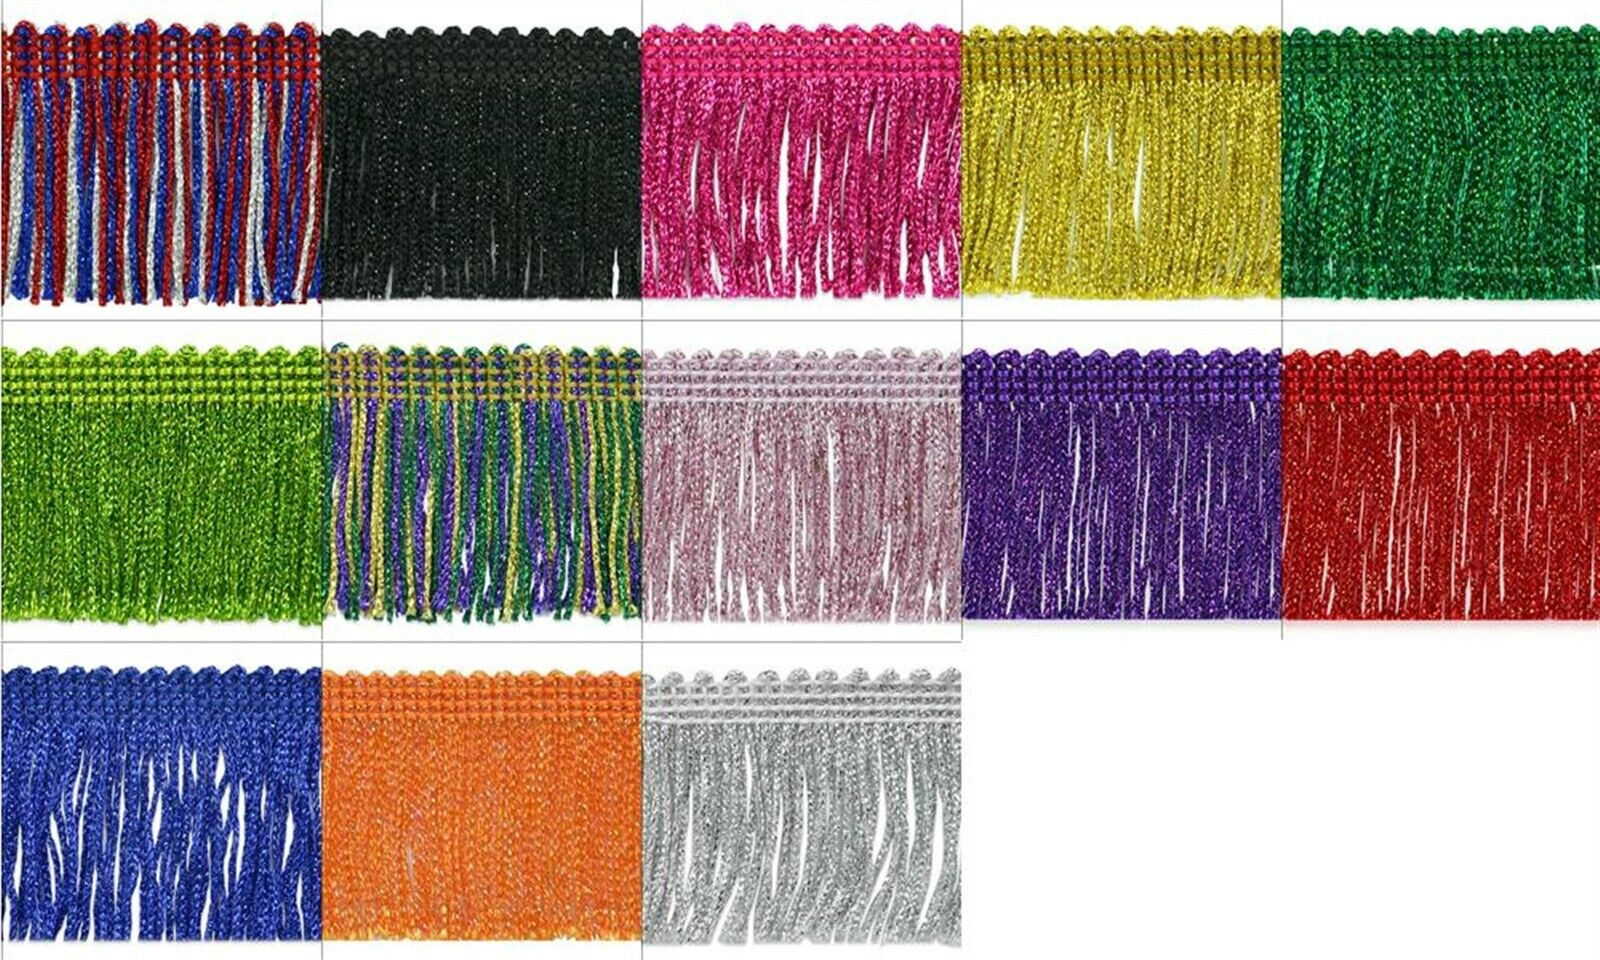 5 Yards of Sharlene 2 Loop Chainette Fringe Trim